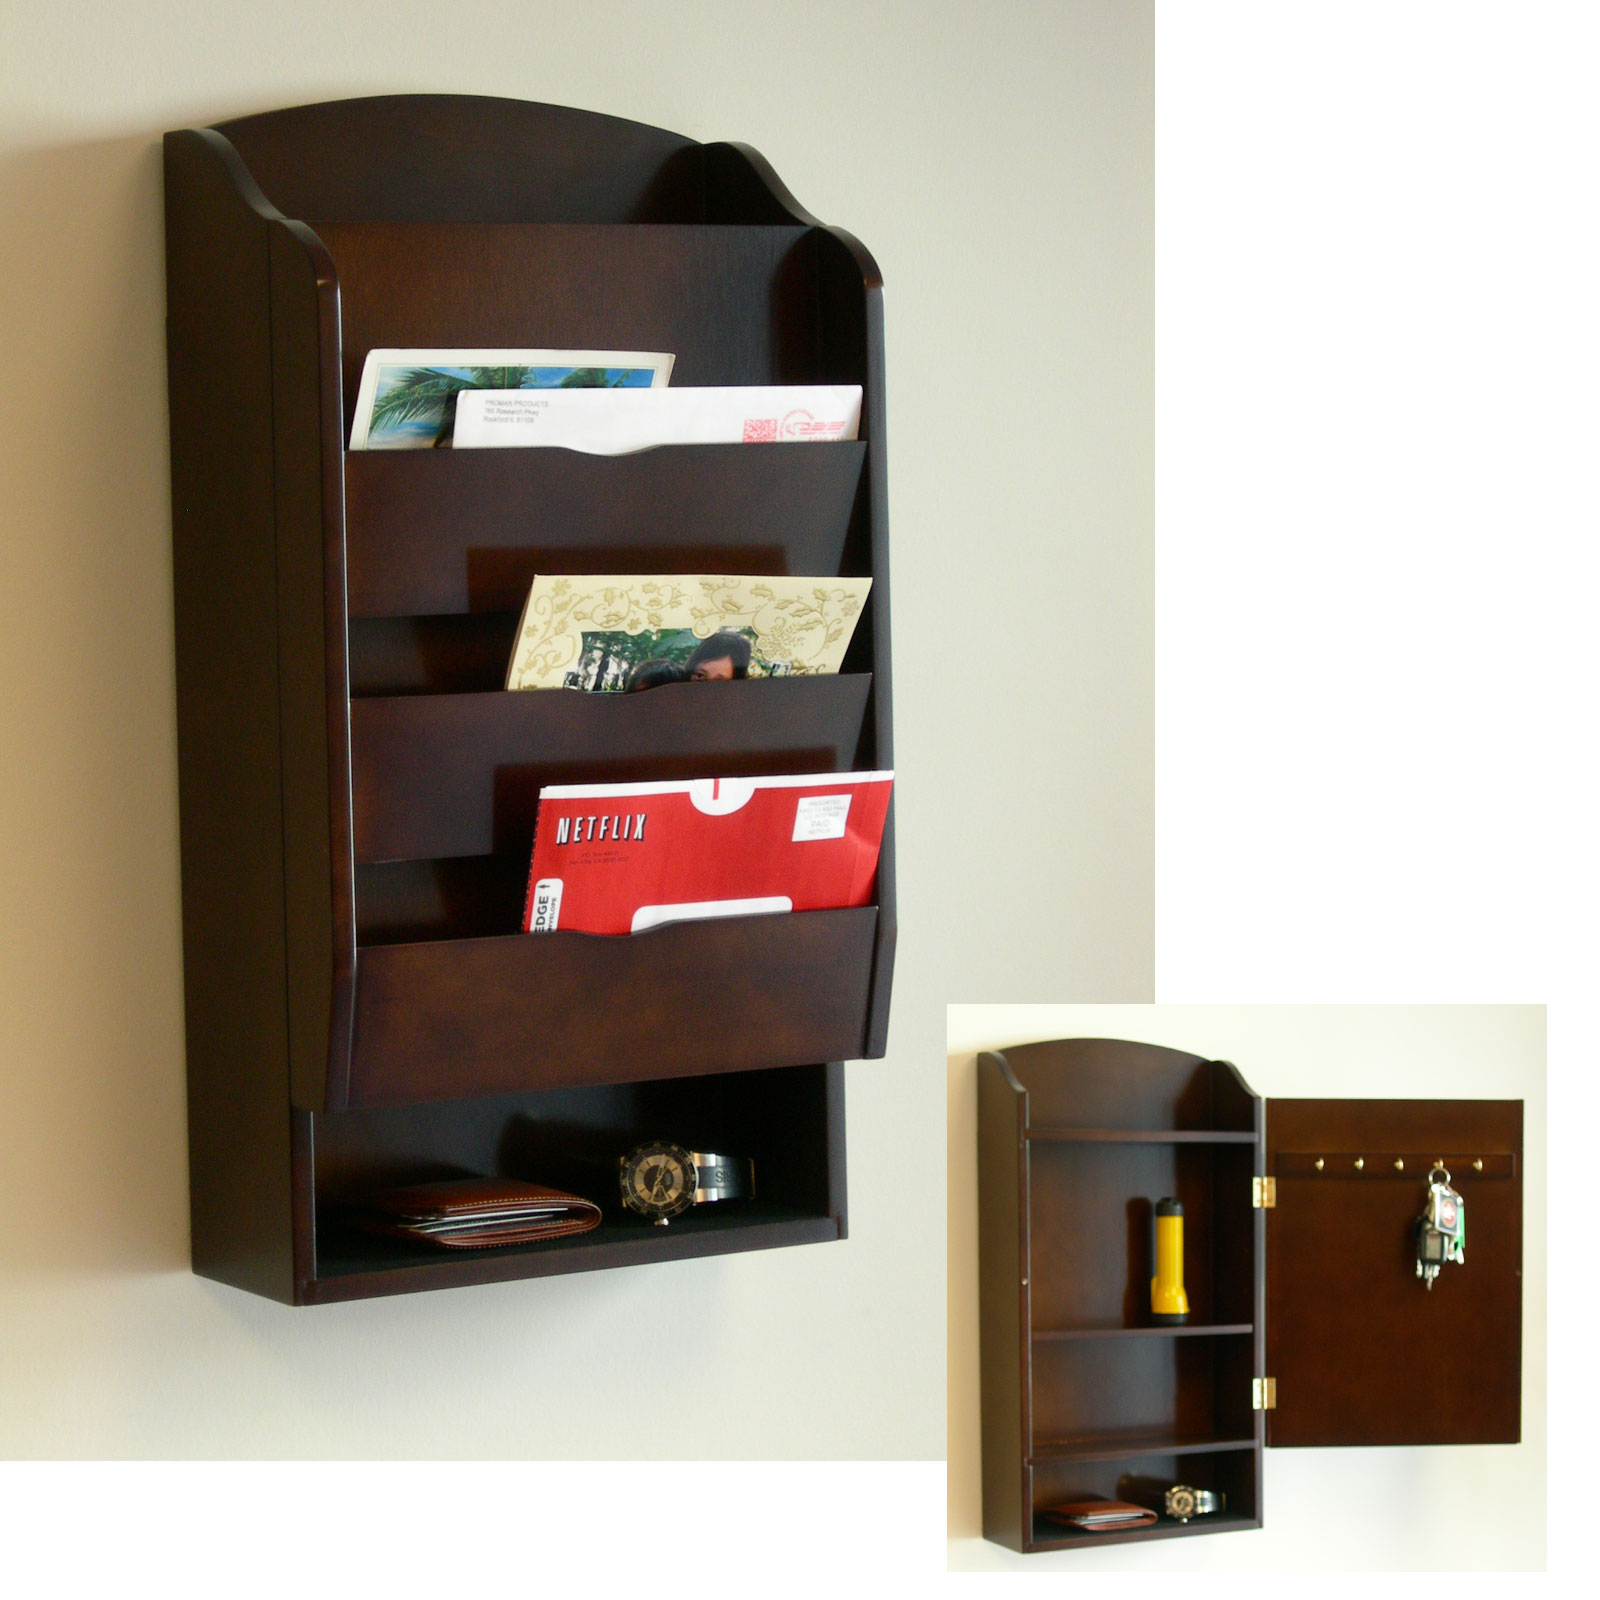 Wall Letter Bin Wall Mounted Mail Organizer A Best Storing Solution For Your